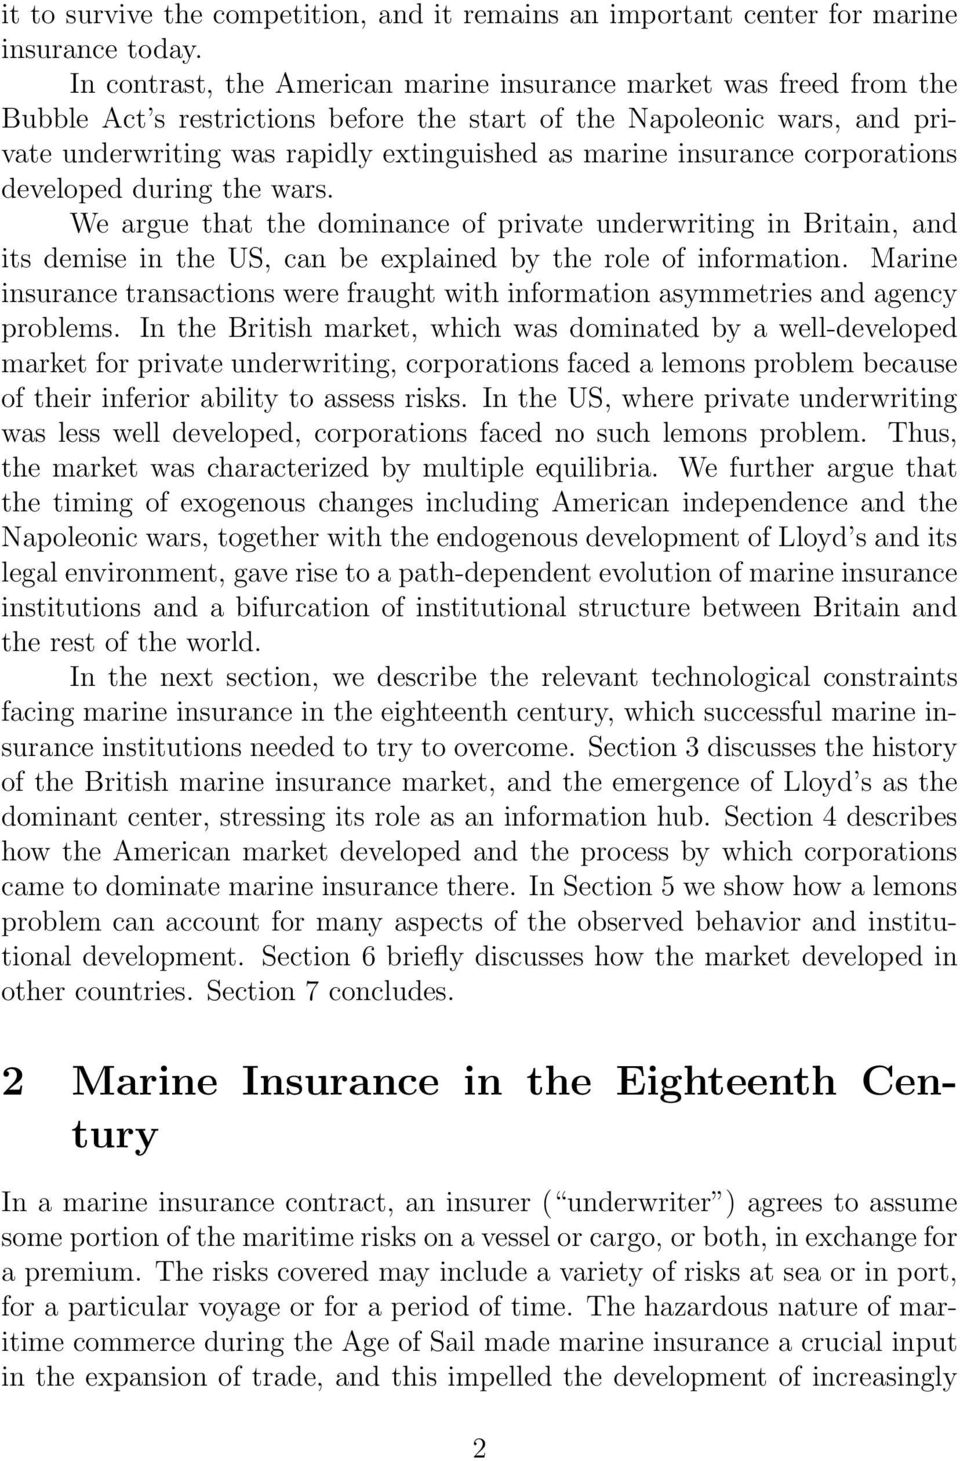 insurance corporations developed during the wars. We argue that the dominance of private underwriting in Britain, and its demise in the US, can be explained by the role of information.